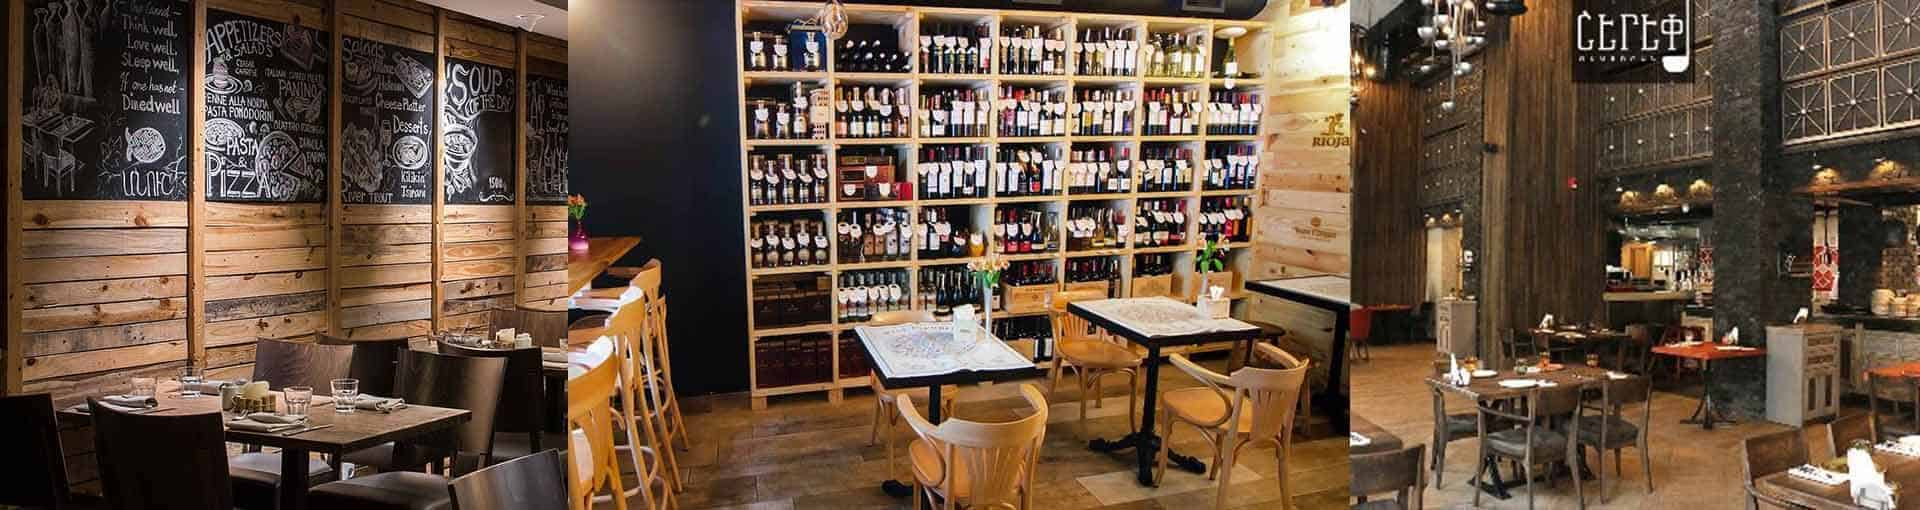 Best Restaurants in Yerevan